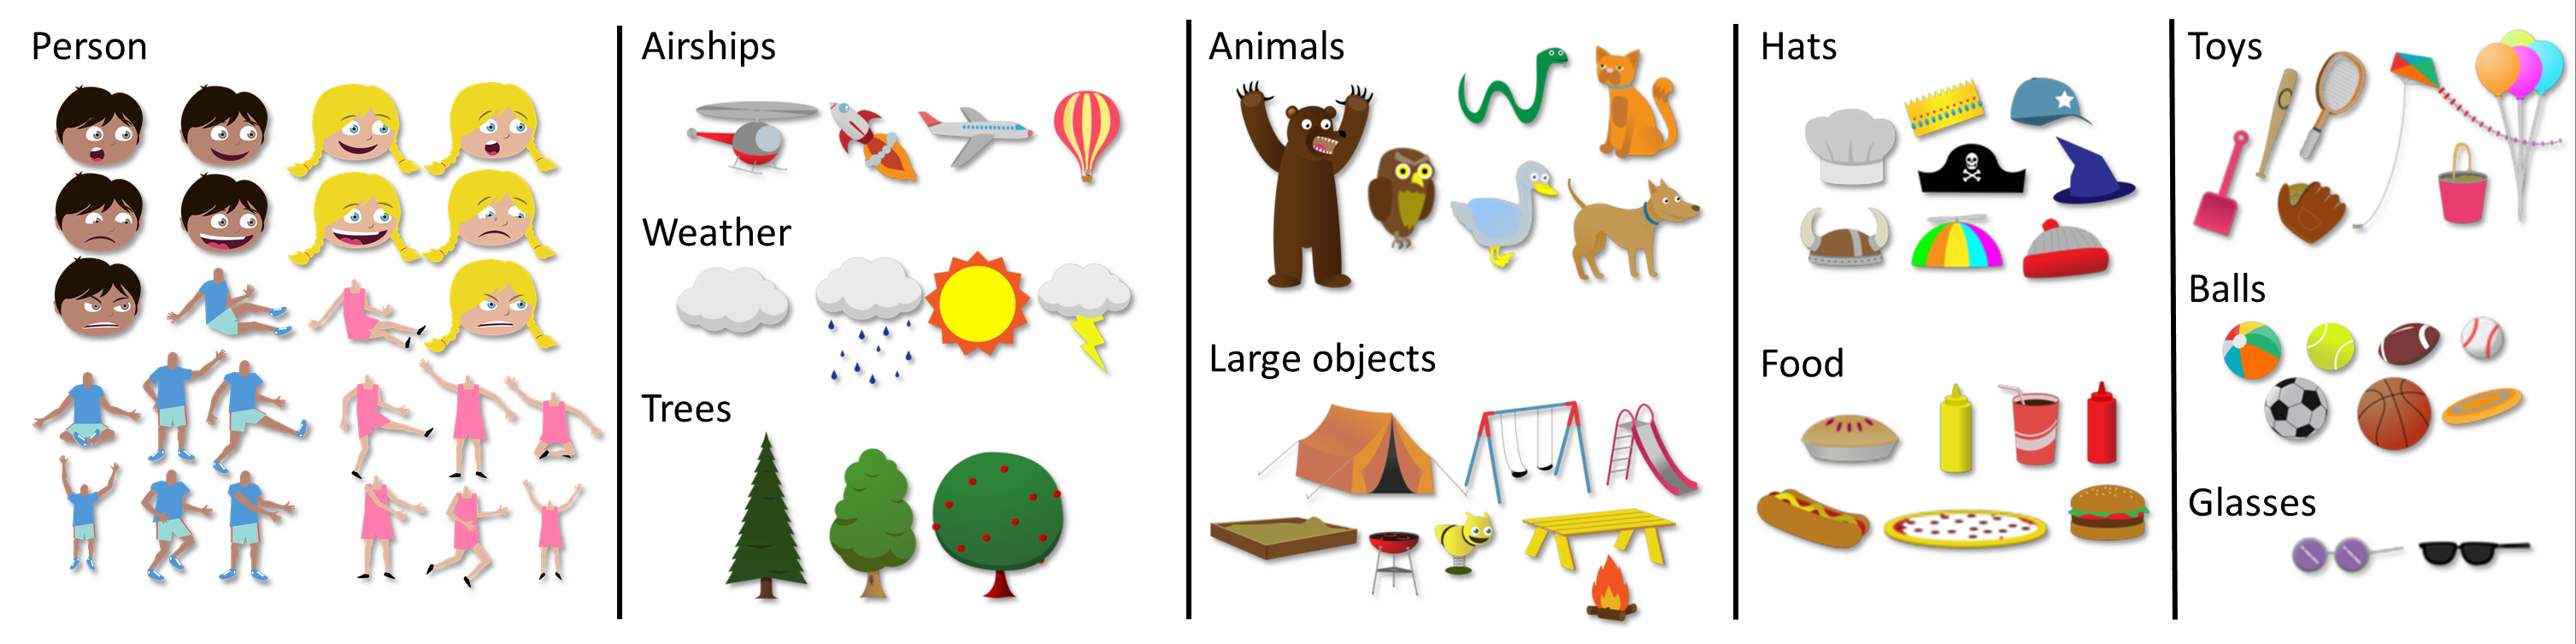 Figure 2. An illustration of the clip art used to create the children (left) and the other available objects (right.) with their combination is impressive.